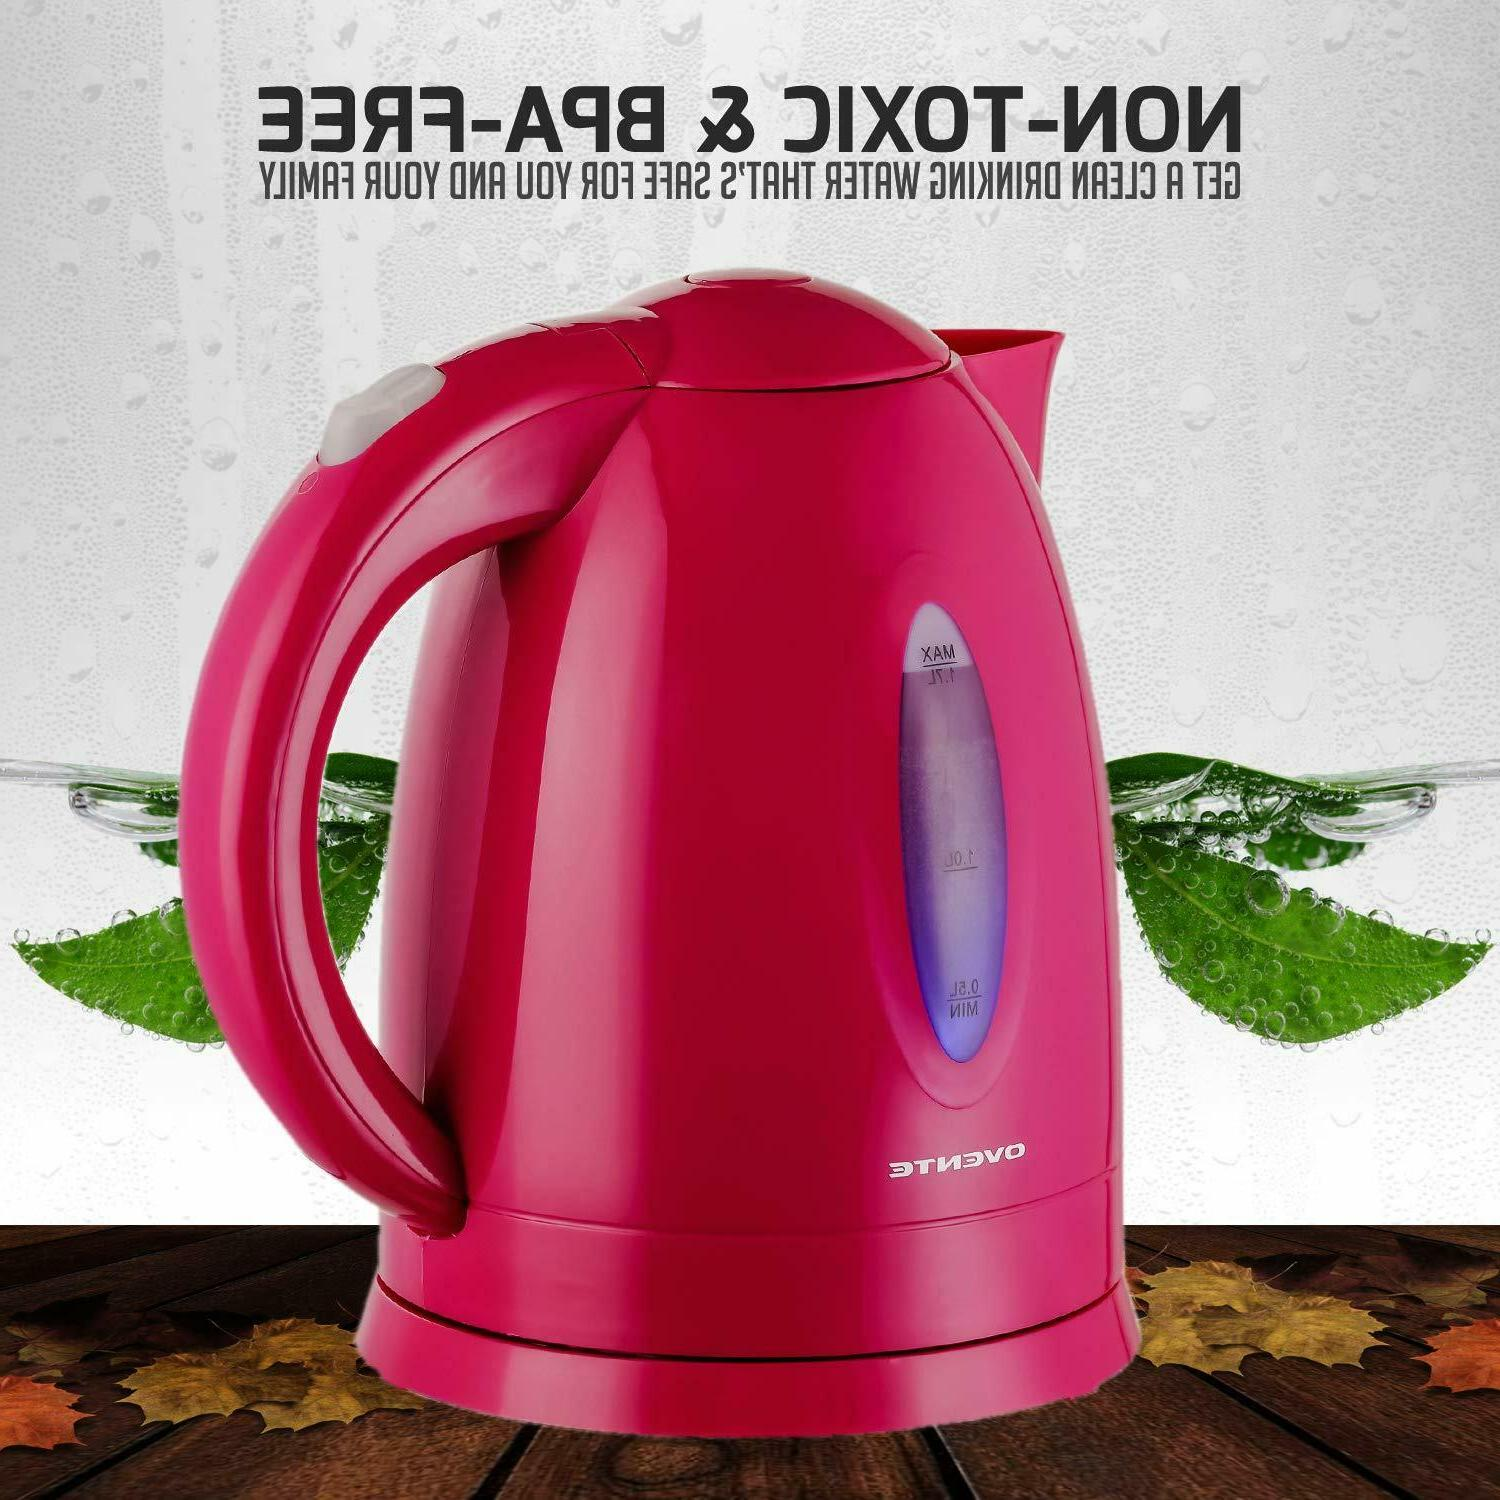 Cordless Electric Kettle Hot Water Fast Boiler 1.7L 1100W